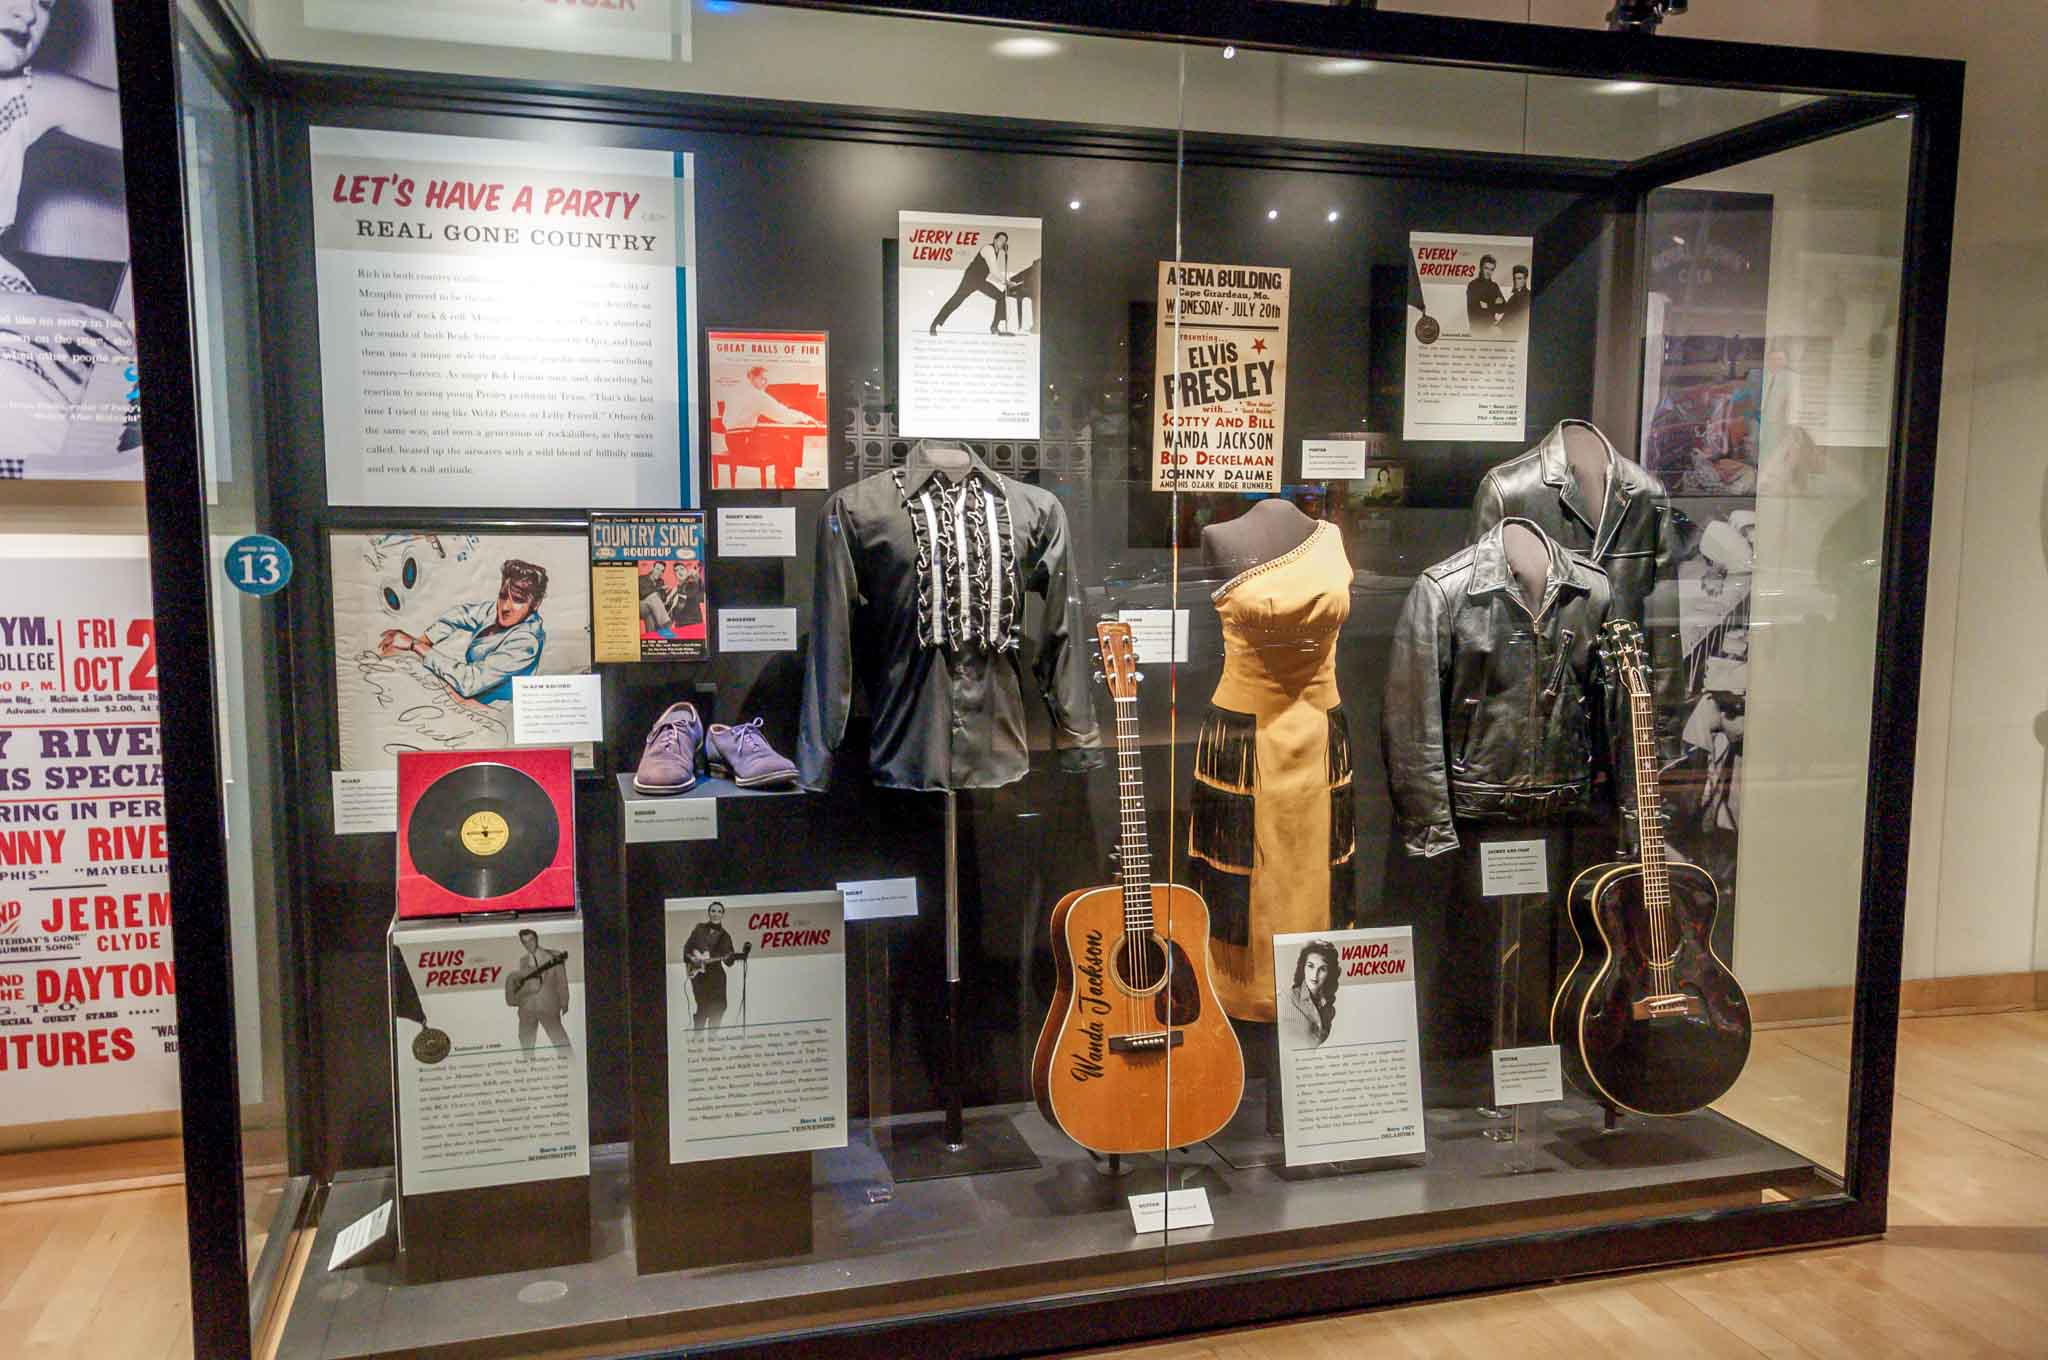 Museum display of records, guitars, and costumes